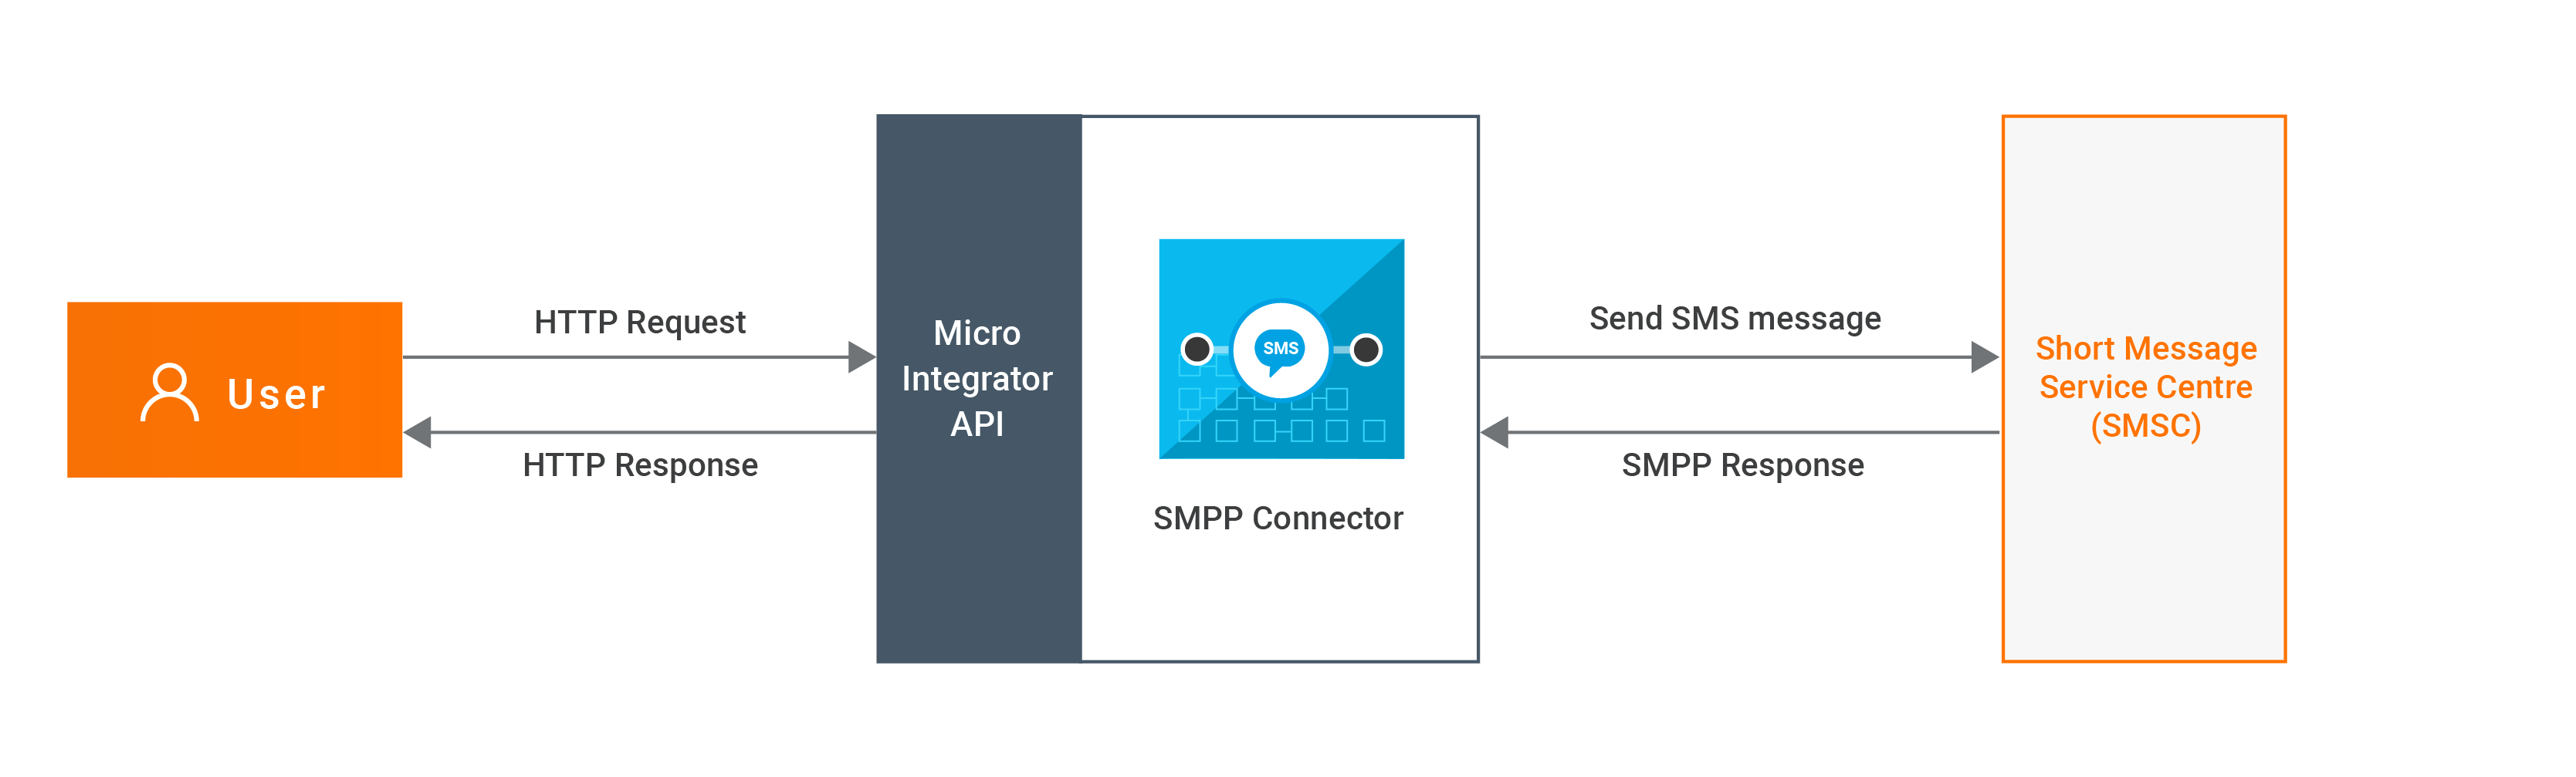 smpp connector example